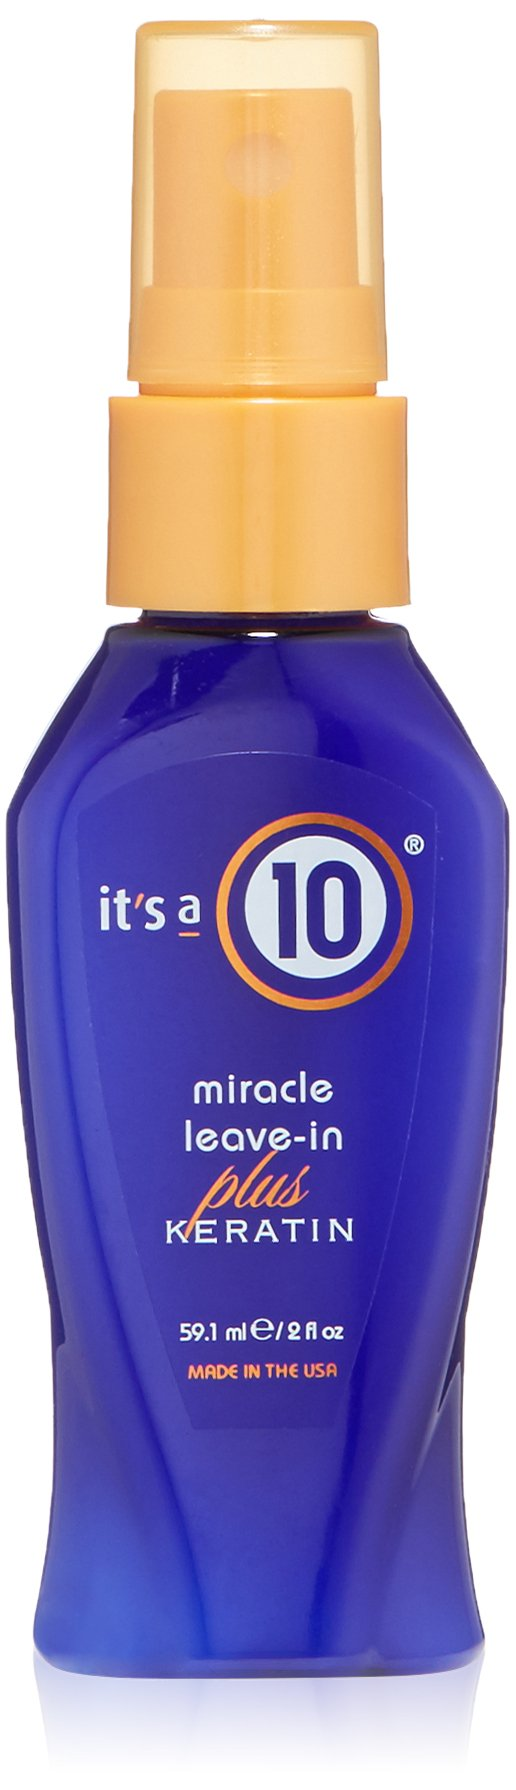 Miracle Leave In Plus Keratin by Its A 10 for Unisex - 2 oz Spray